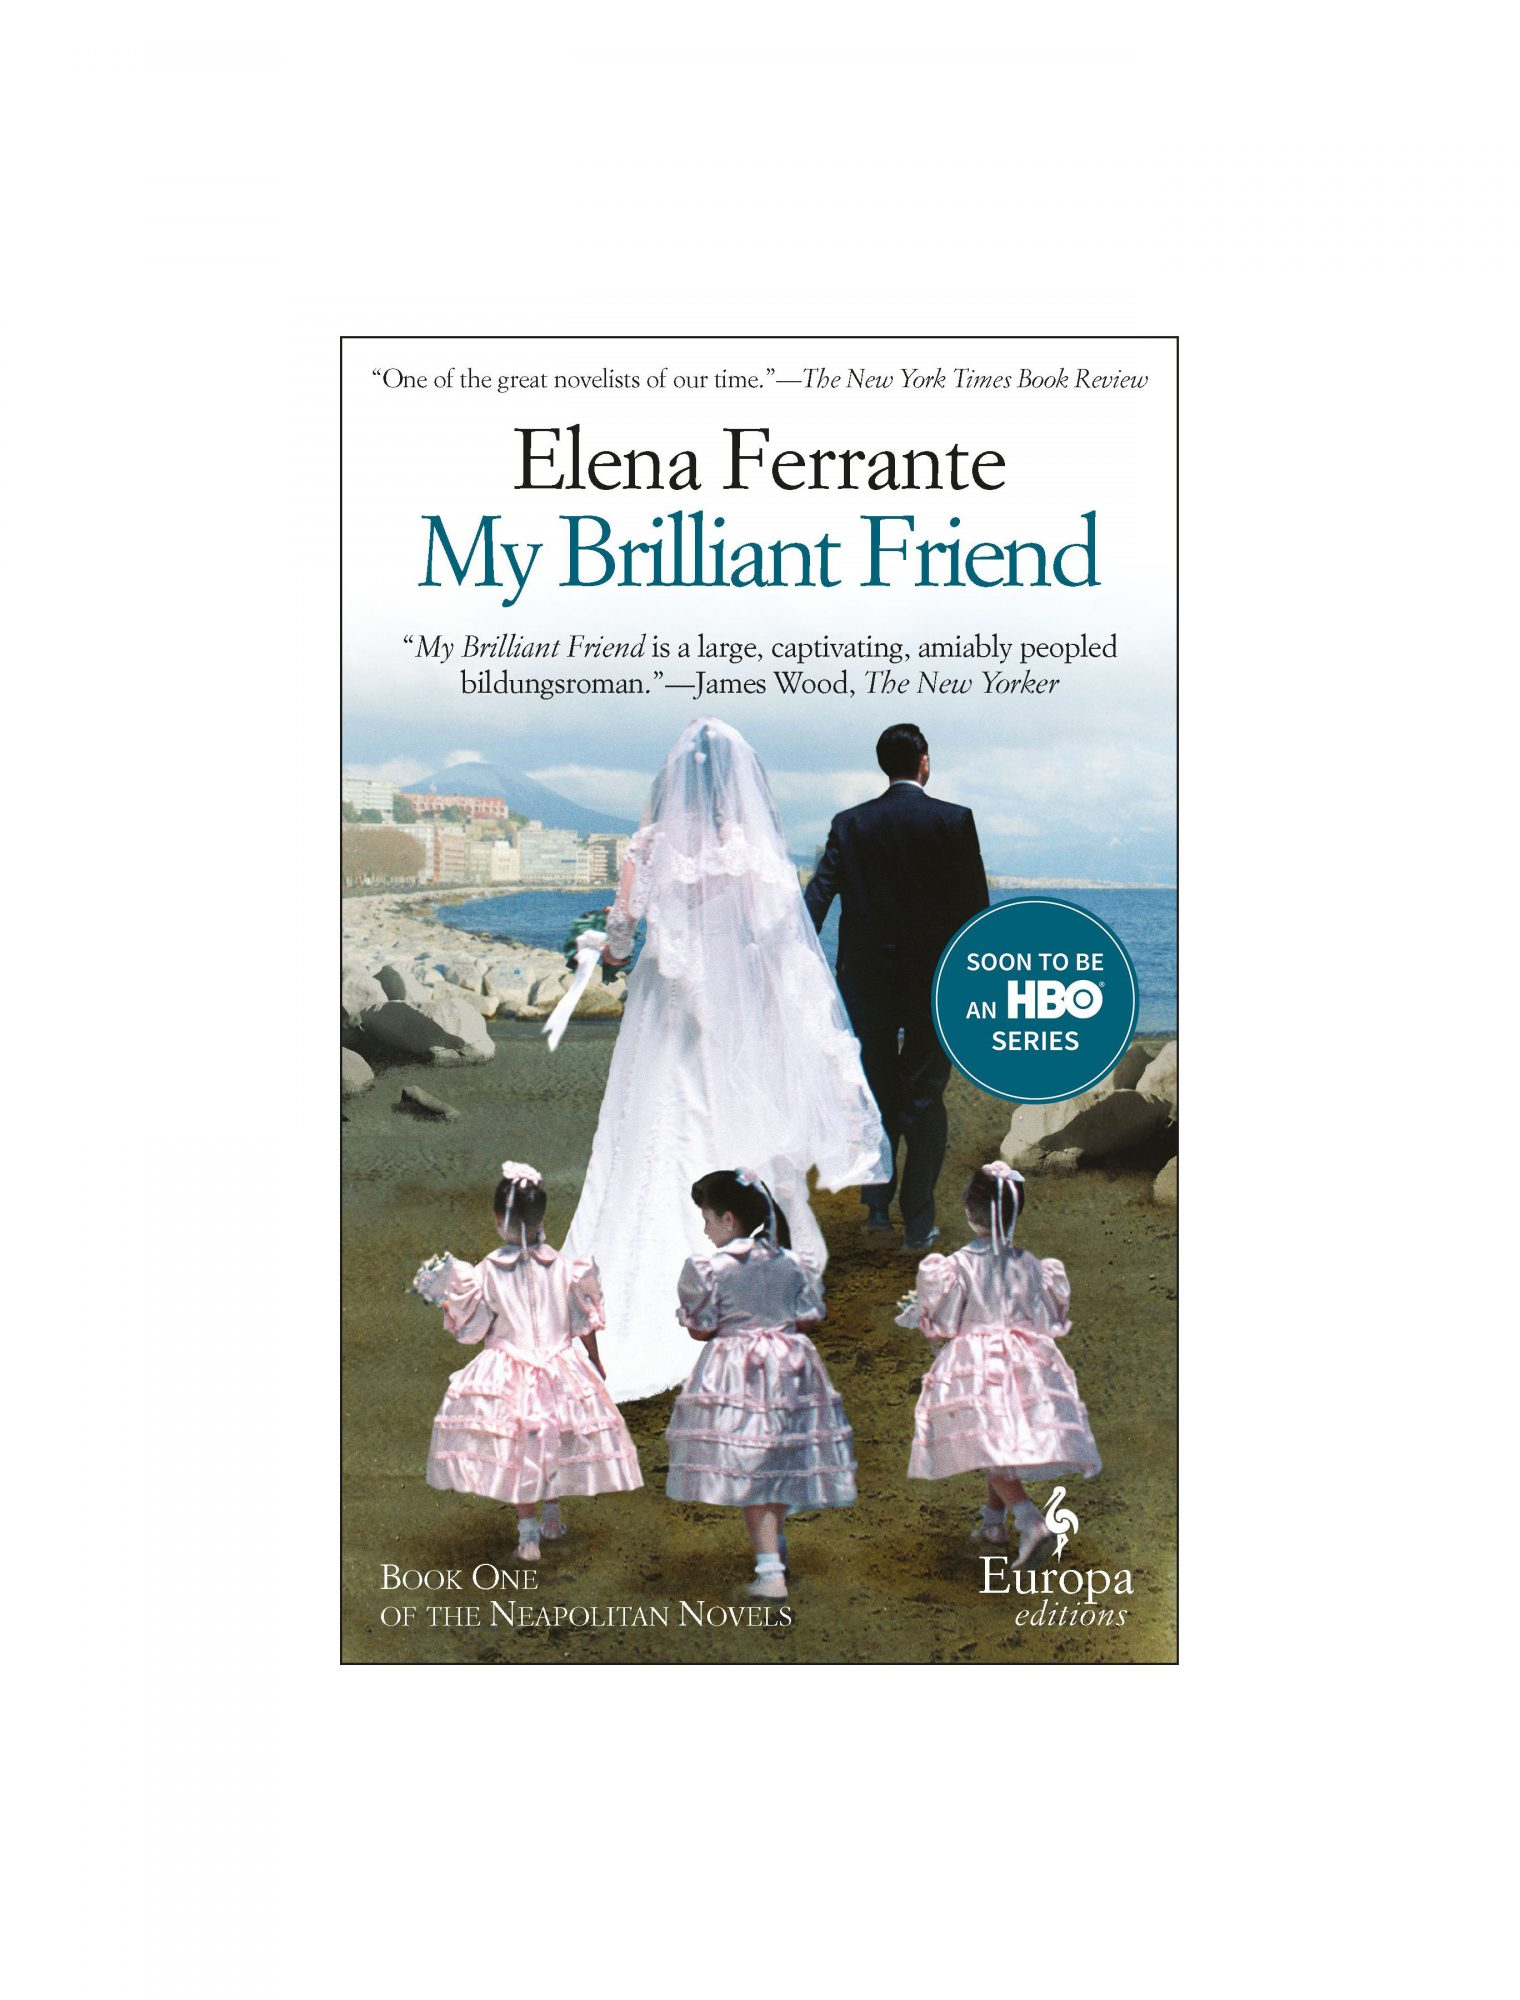 My Brilliant Friend, by Elena Ferrante